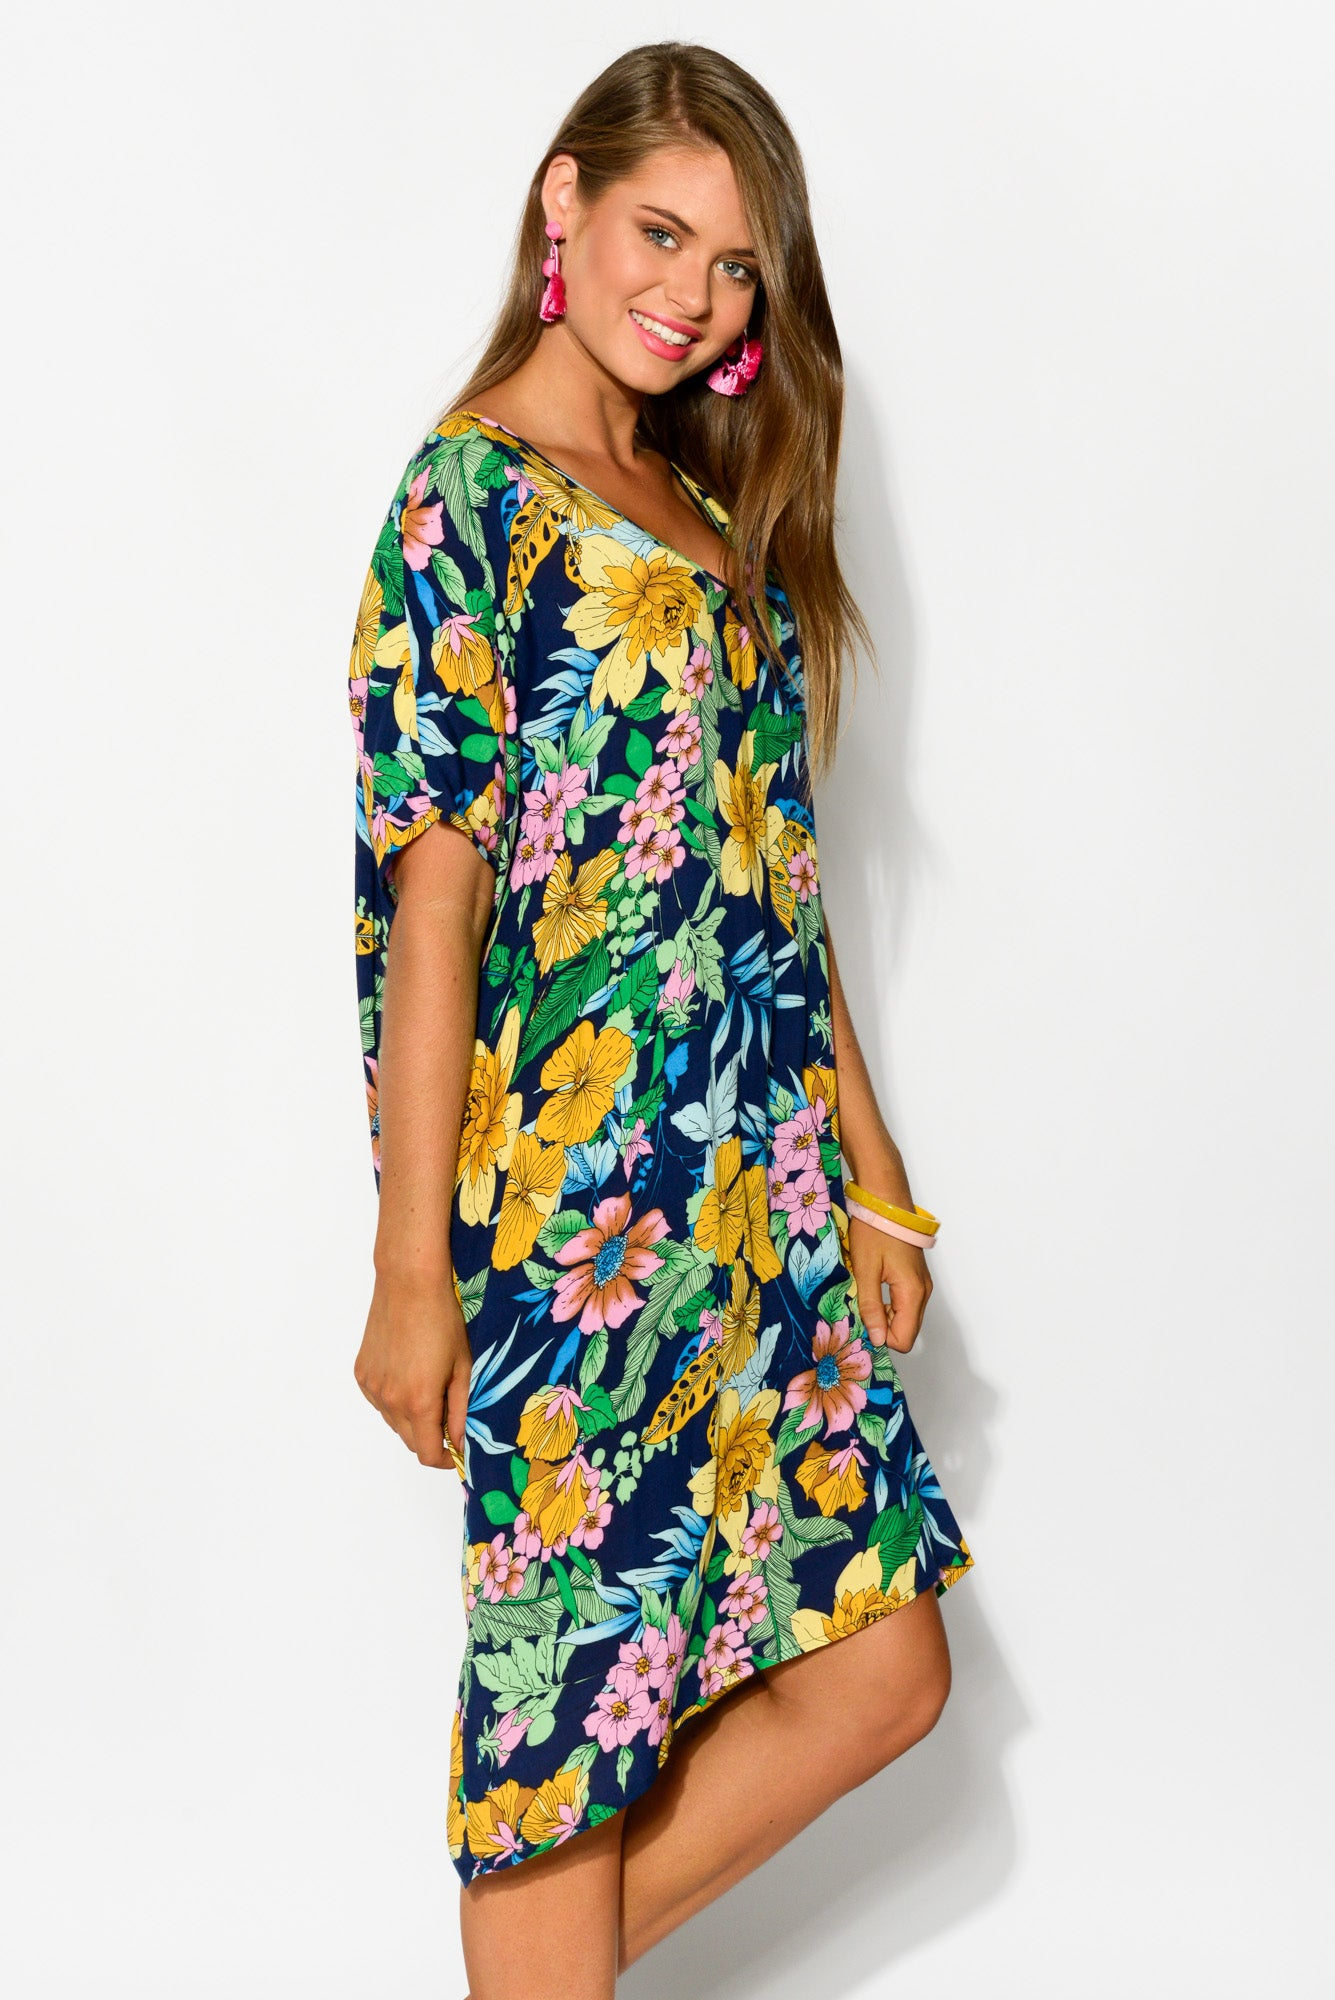 Beth Navy Floral Kaftan Dress - Blue Bungalow